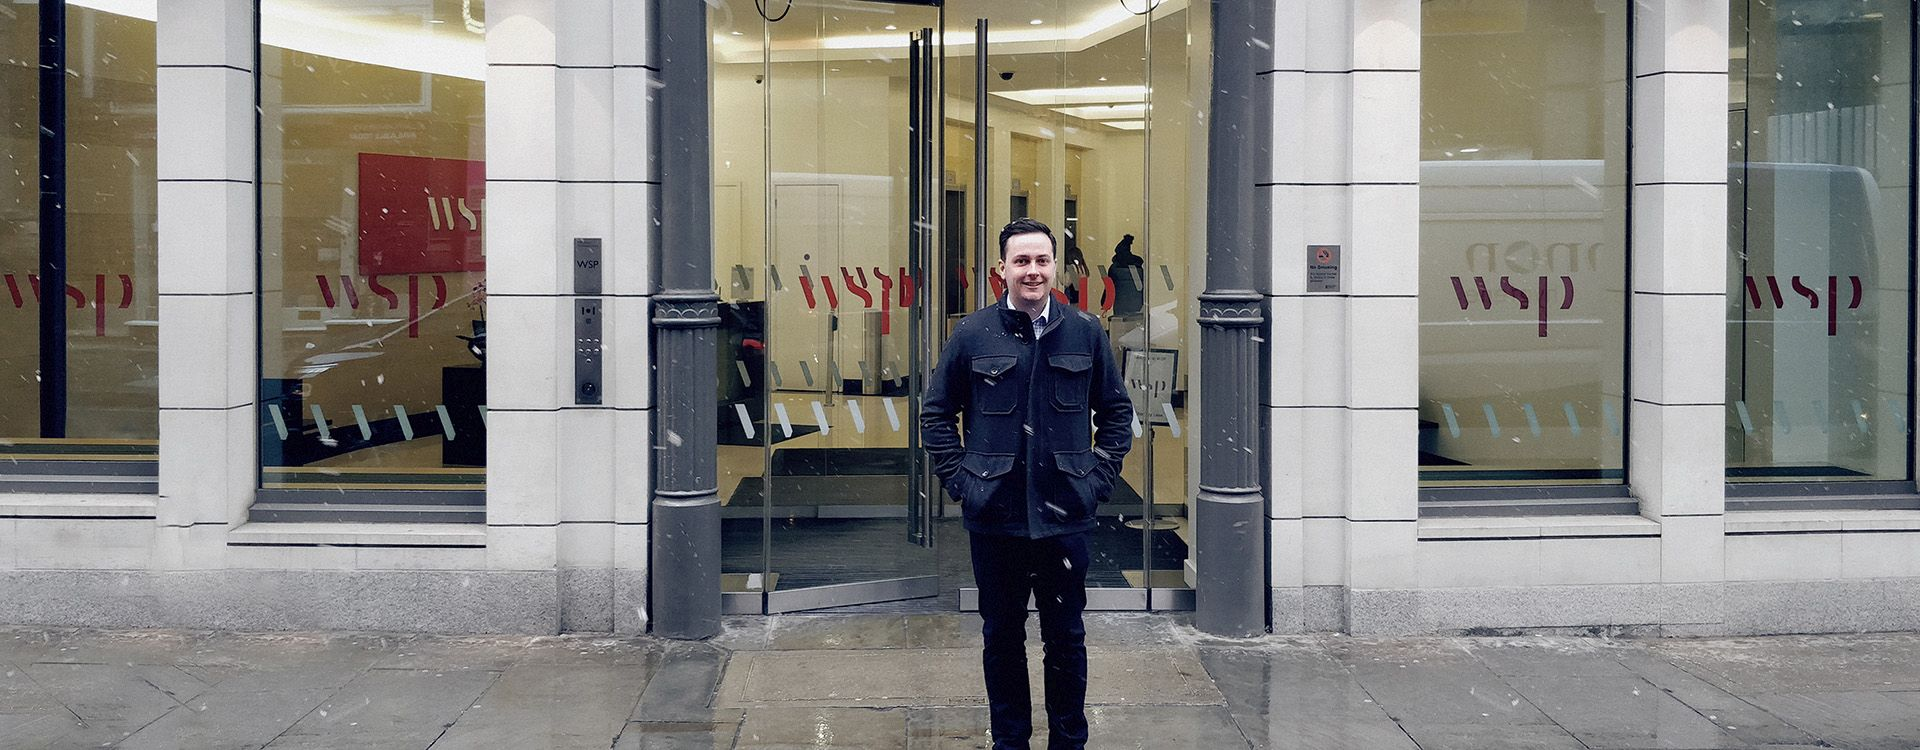 Trent Byrne, Senior Engineer for WSP, seized an opportunity to spend up to two years working in our London office.